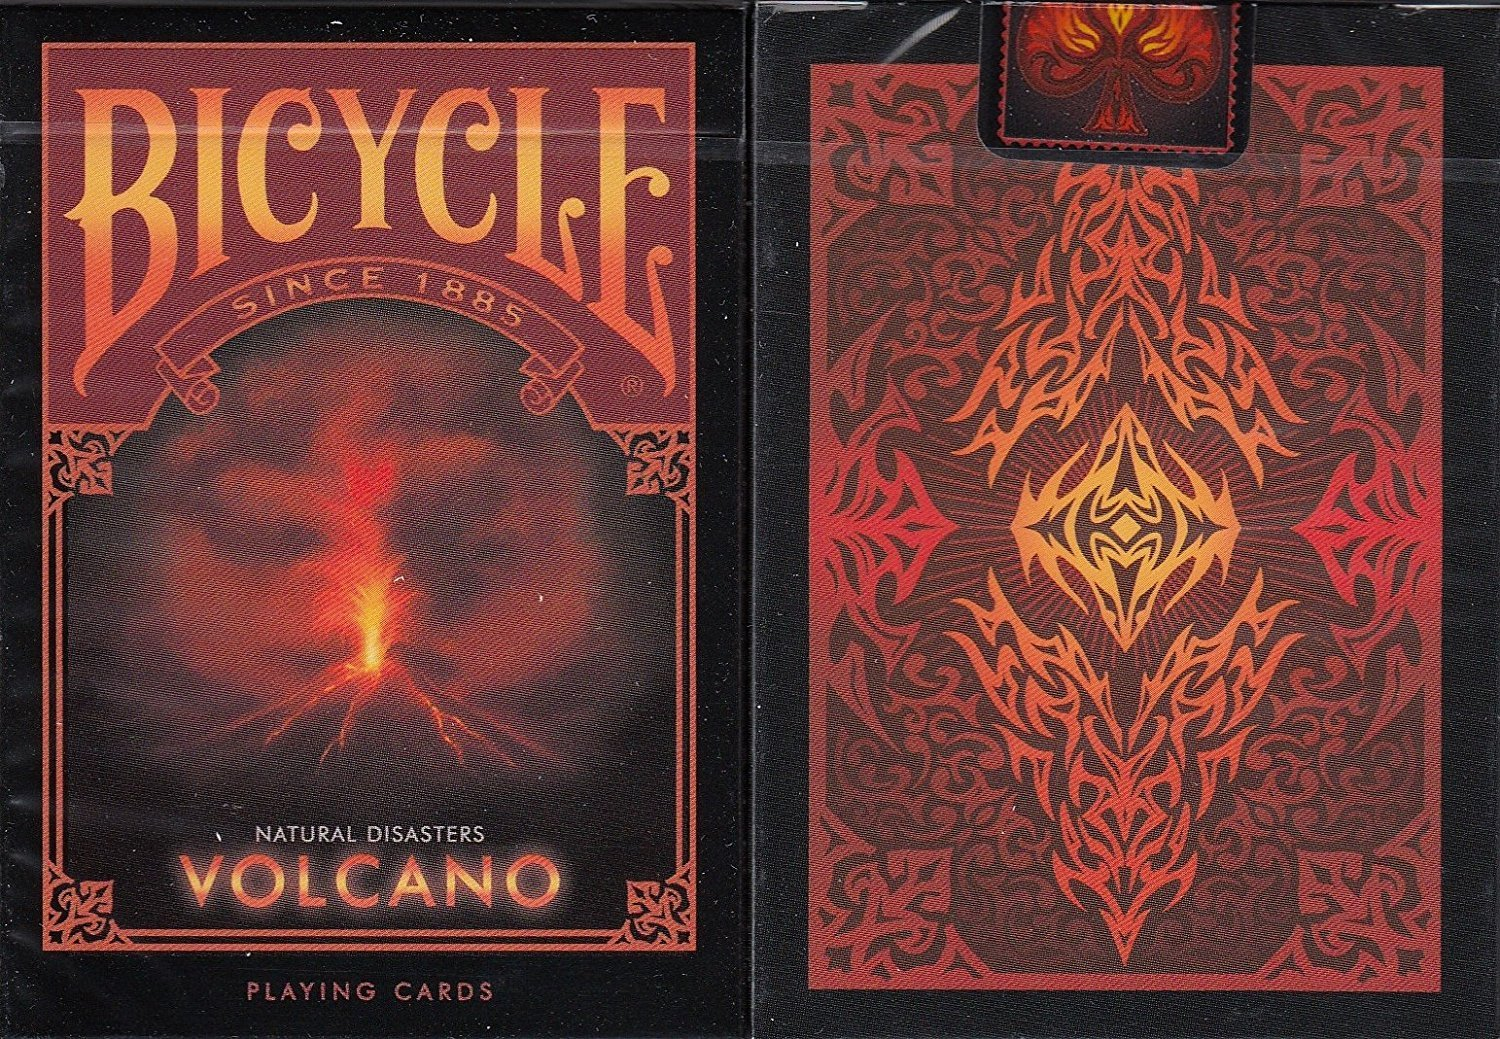 BICYCLE NATURAL DISASTERS PLAYING CARDS BY COLLECTABLE PLAYING CARDS, 4 DECK SET ''EARTHQUAKE, TORNADO, WILDFIRE & VOLCANO''